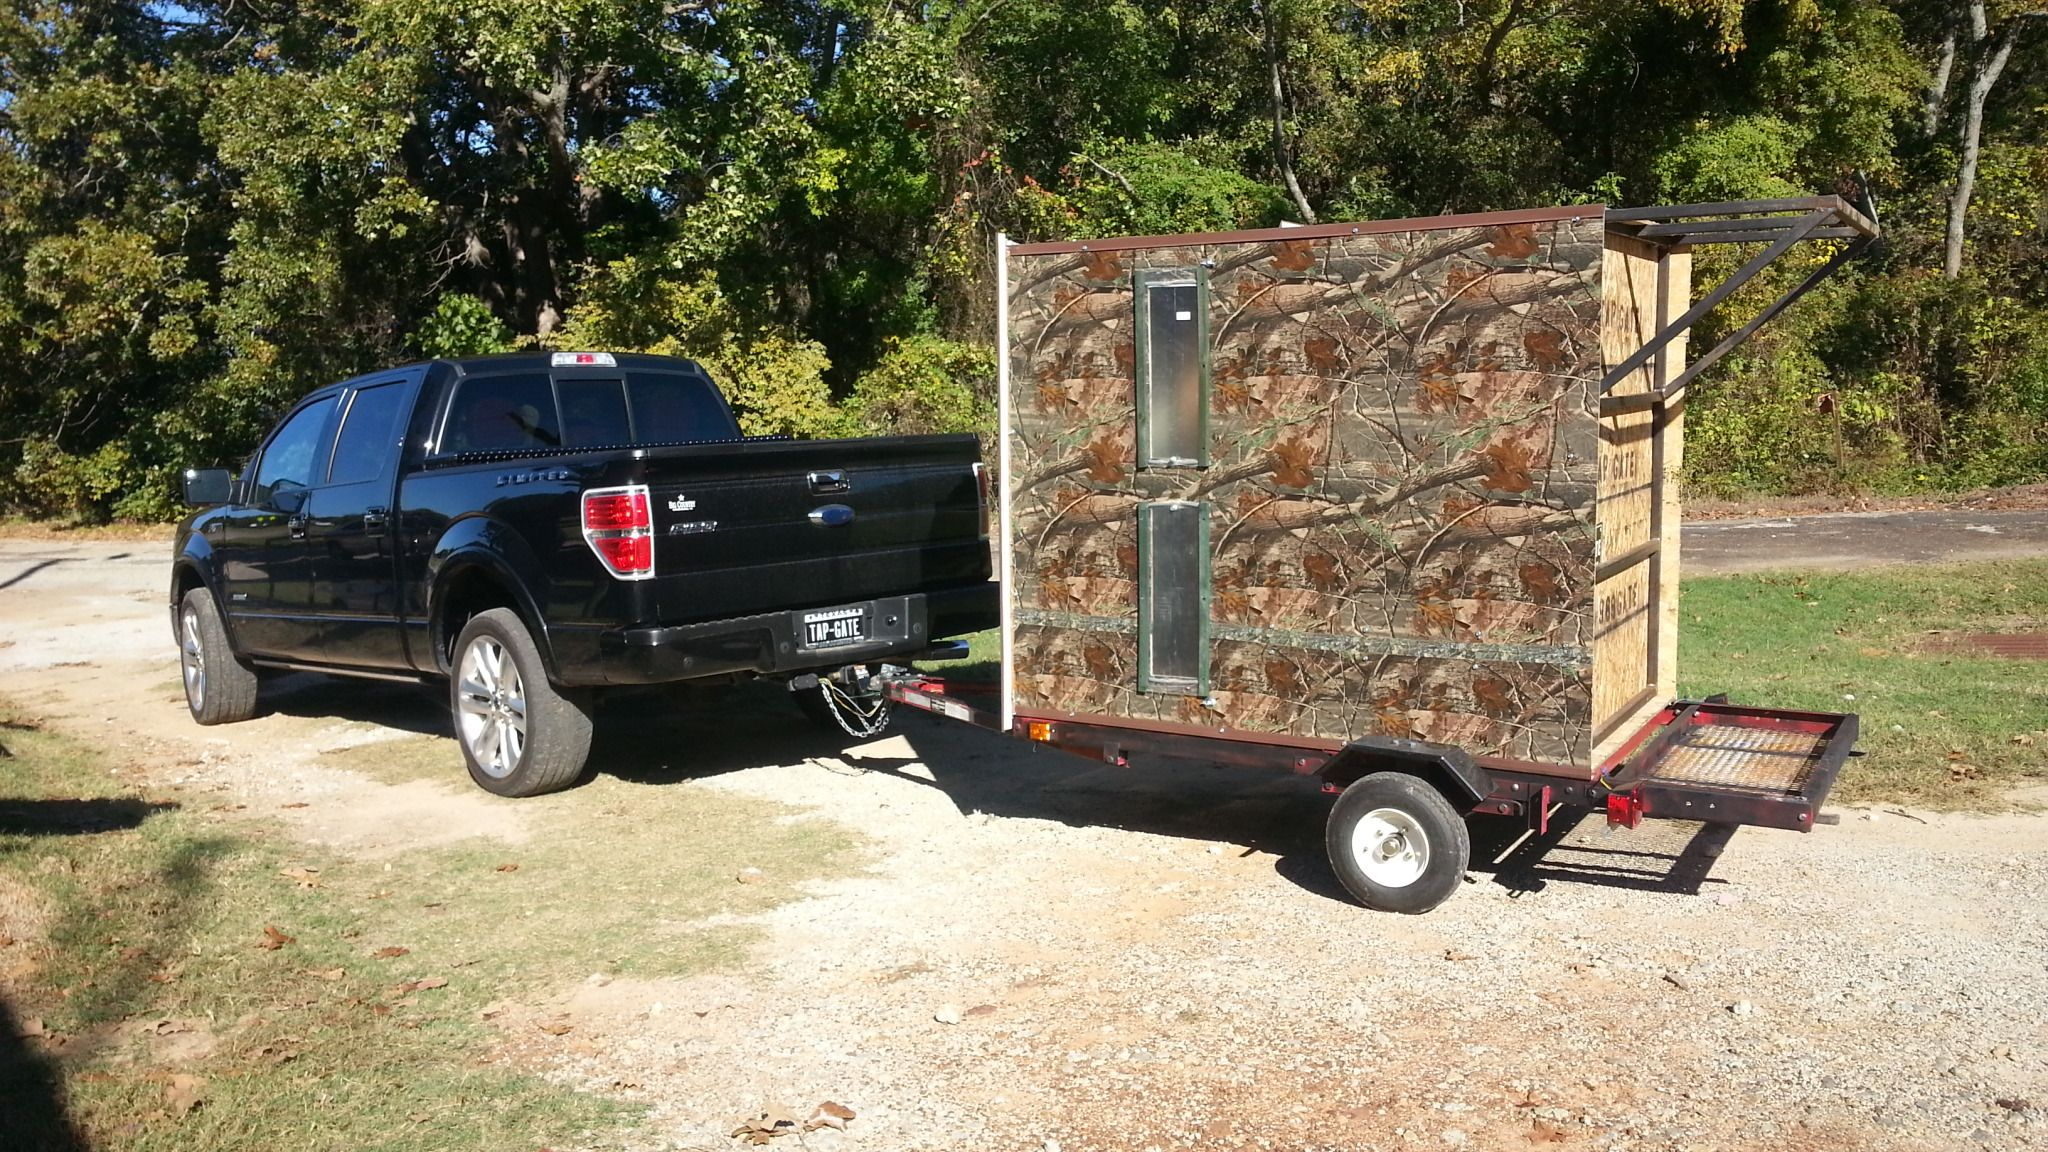 Fully portable hunting blind built on a small trailer for